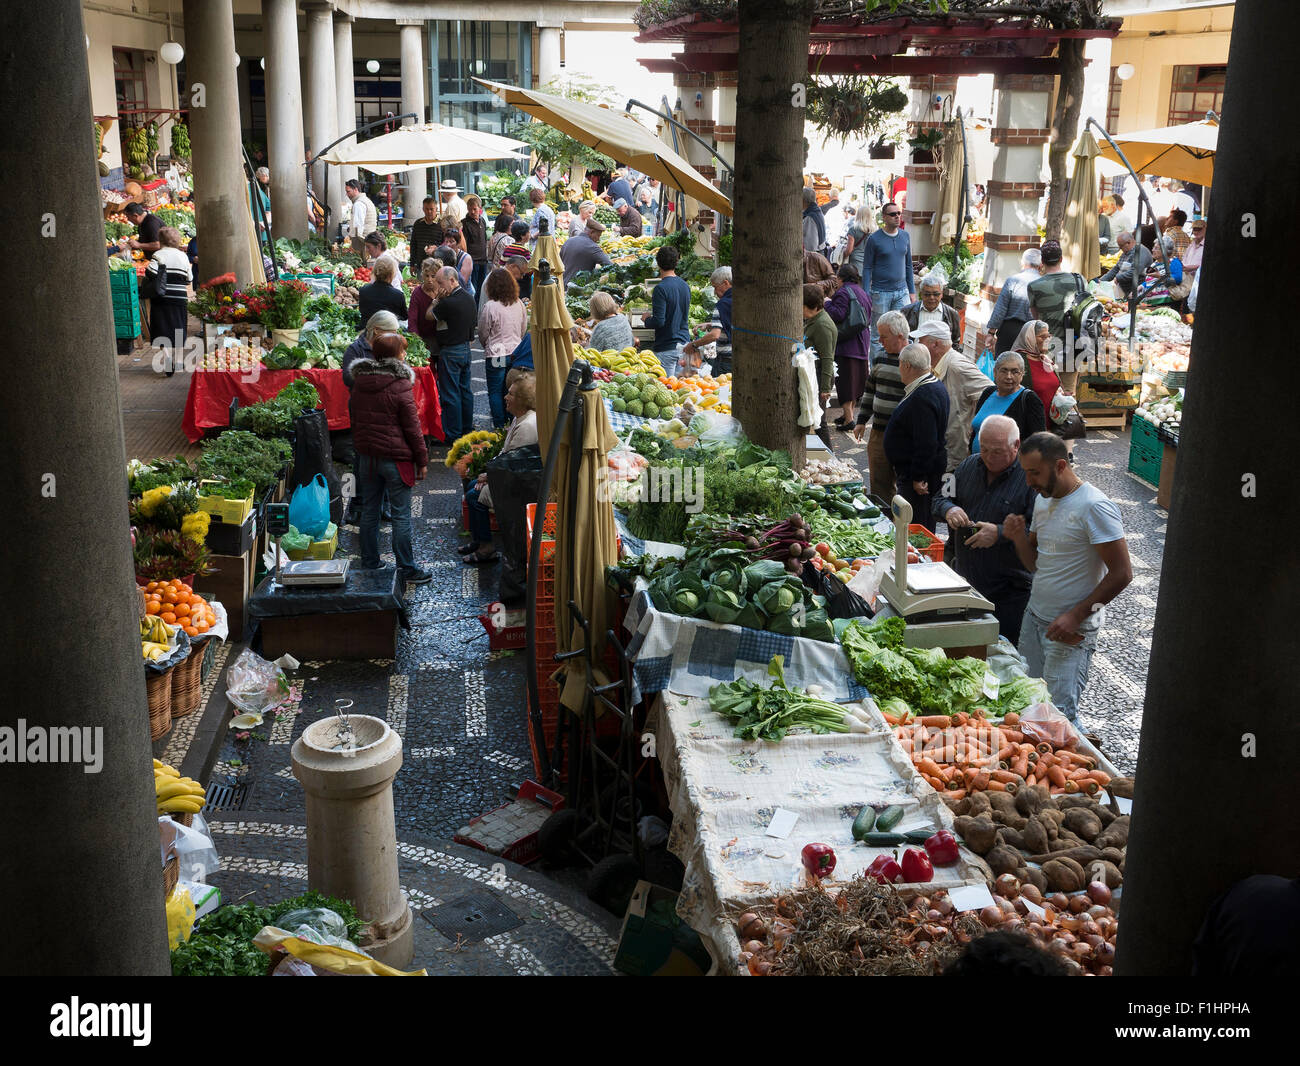 The Fruit, Vegetable and Flower Market, Funchal, Madeira, Portugal - Stock Image